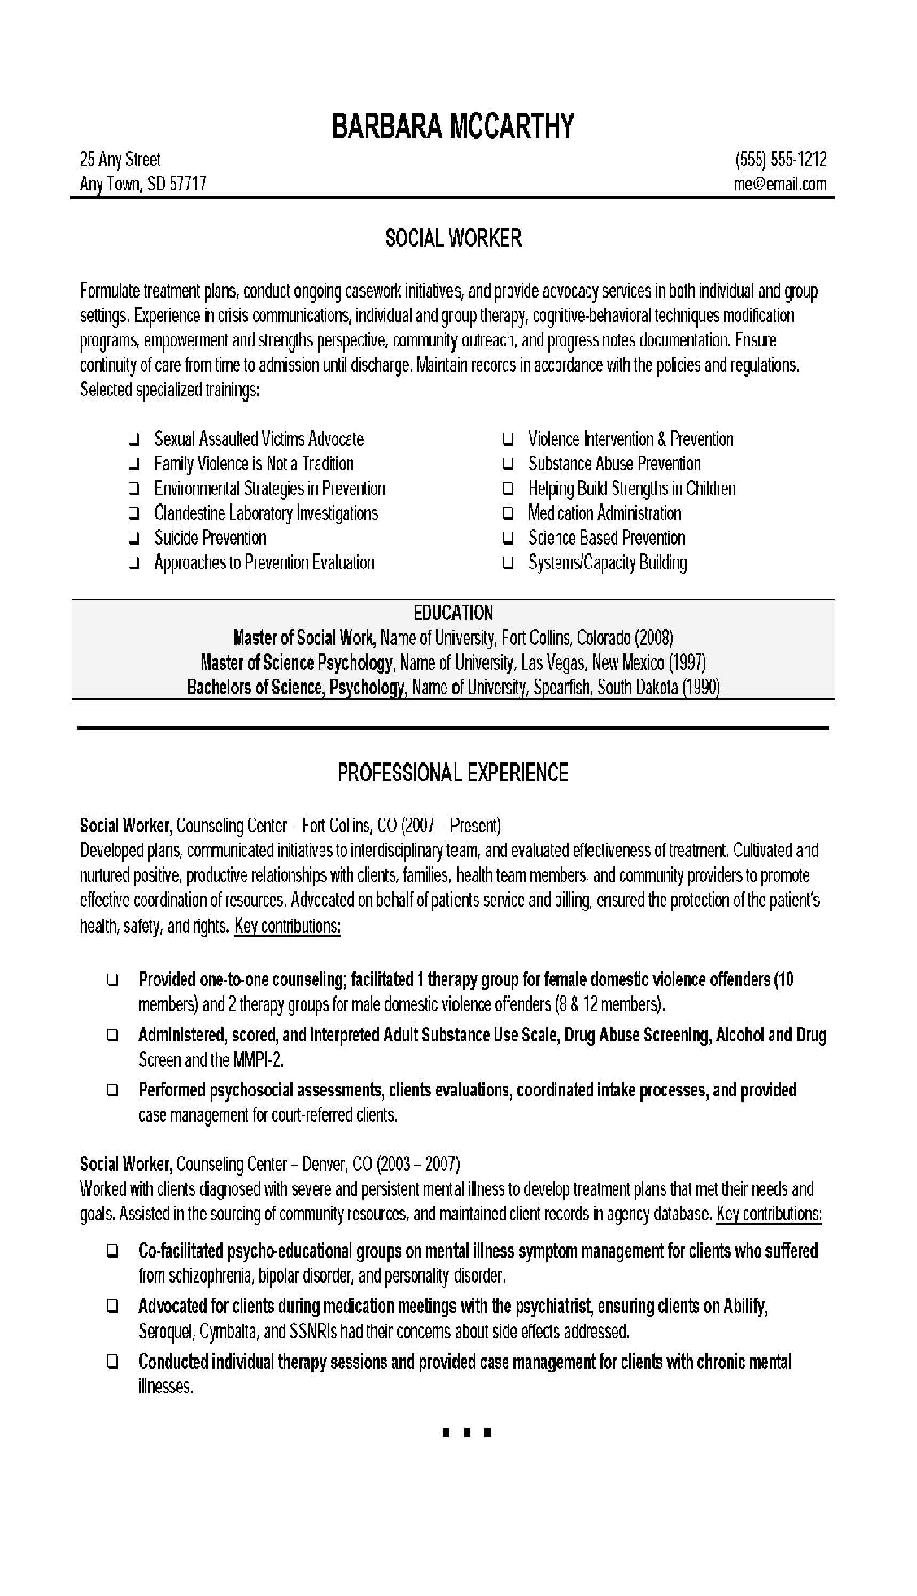 Social Work Resume Objective Statement SampleBusinessResume – Resume Objective Statements